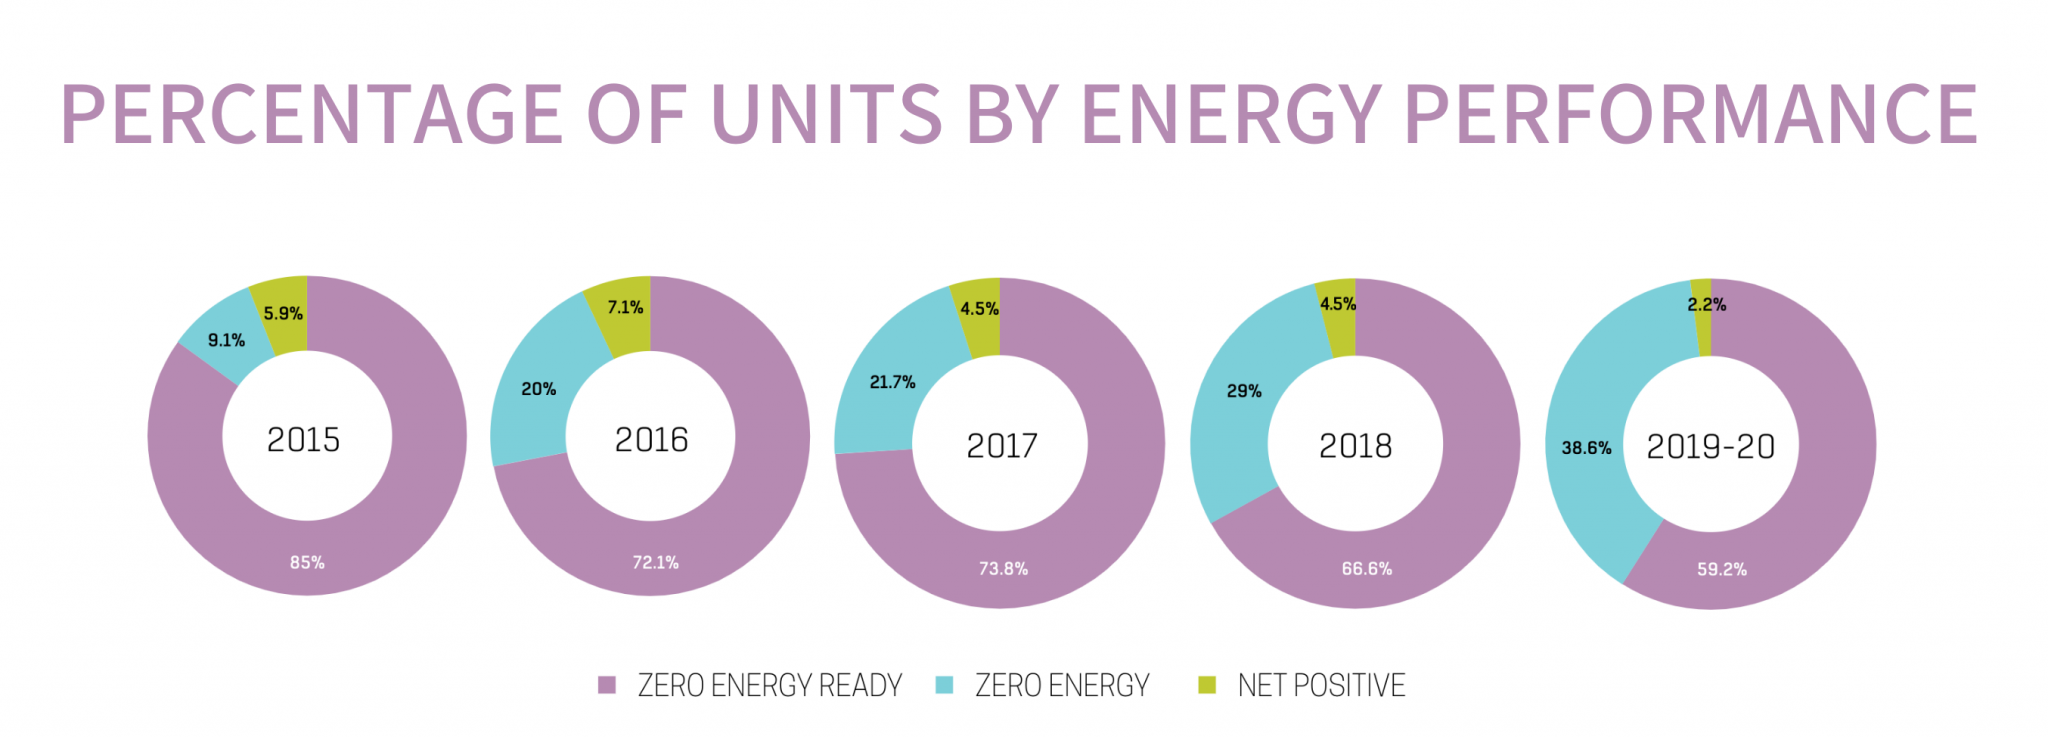 Percentage of Units by Energy Performance